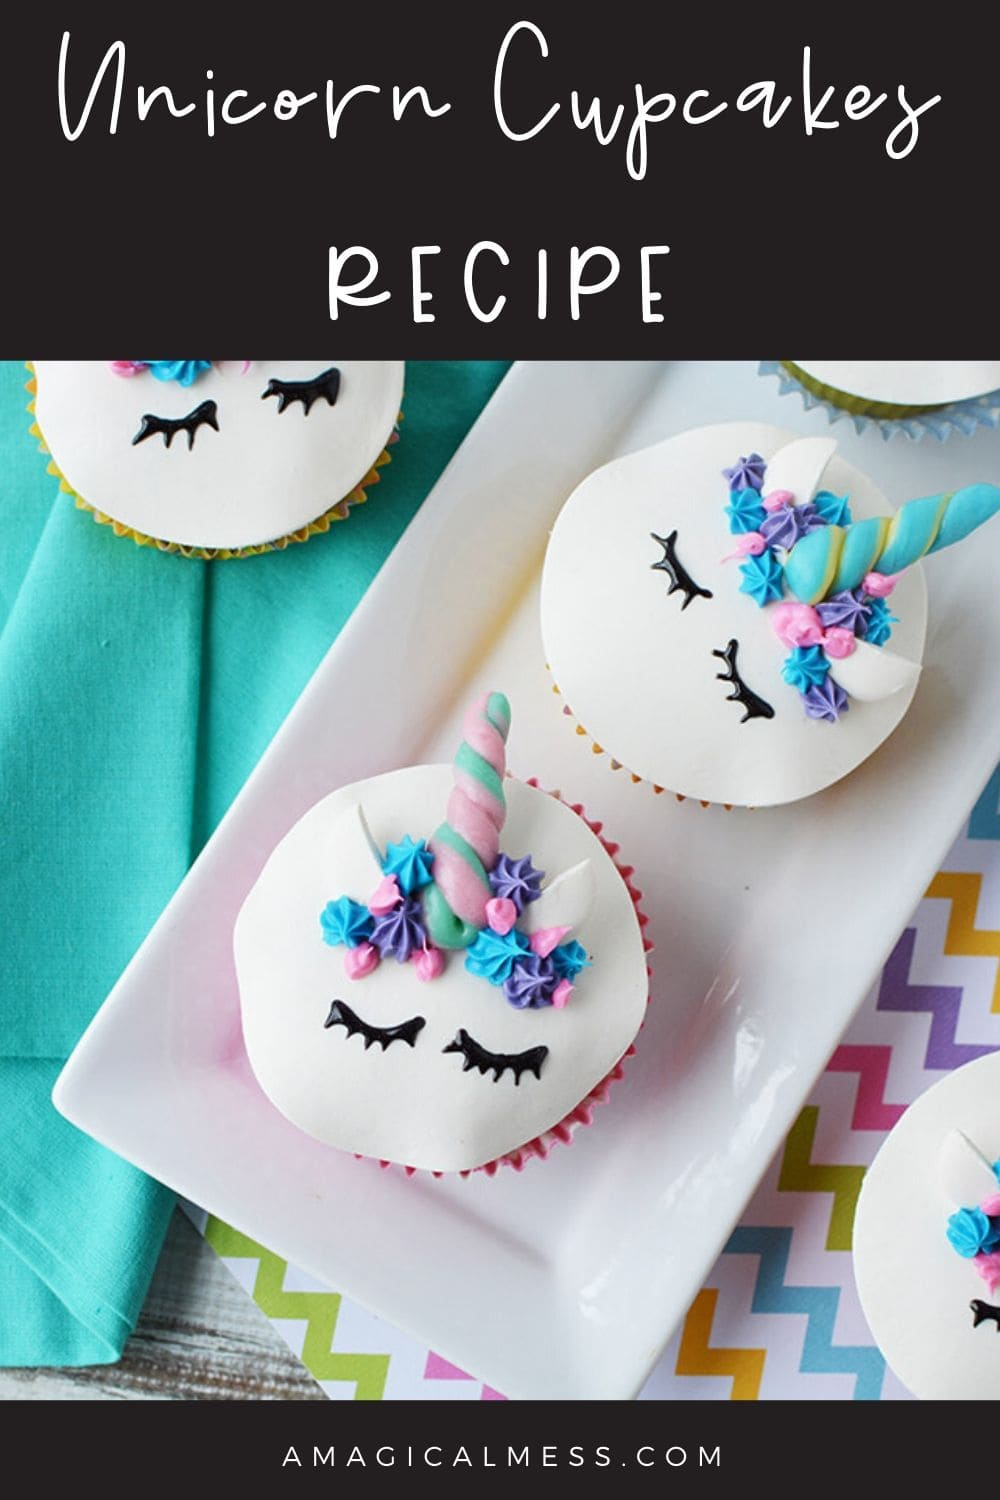 Unicorn cupcakes on a plate